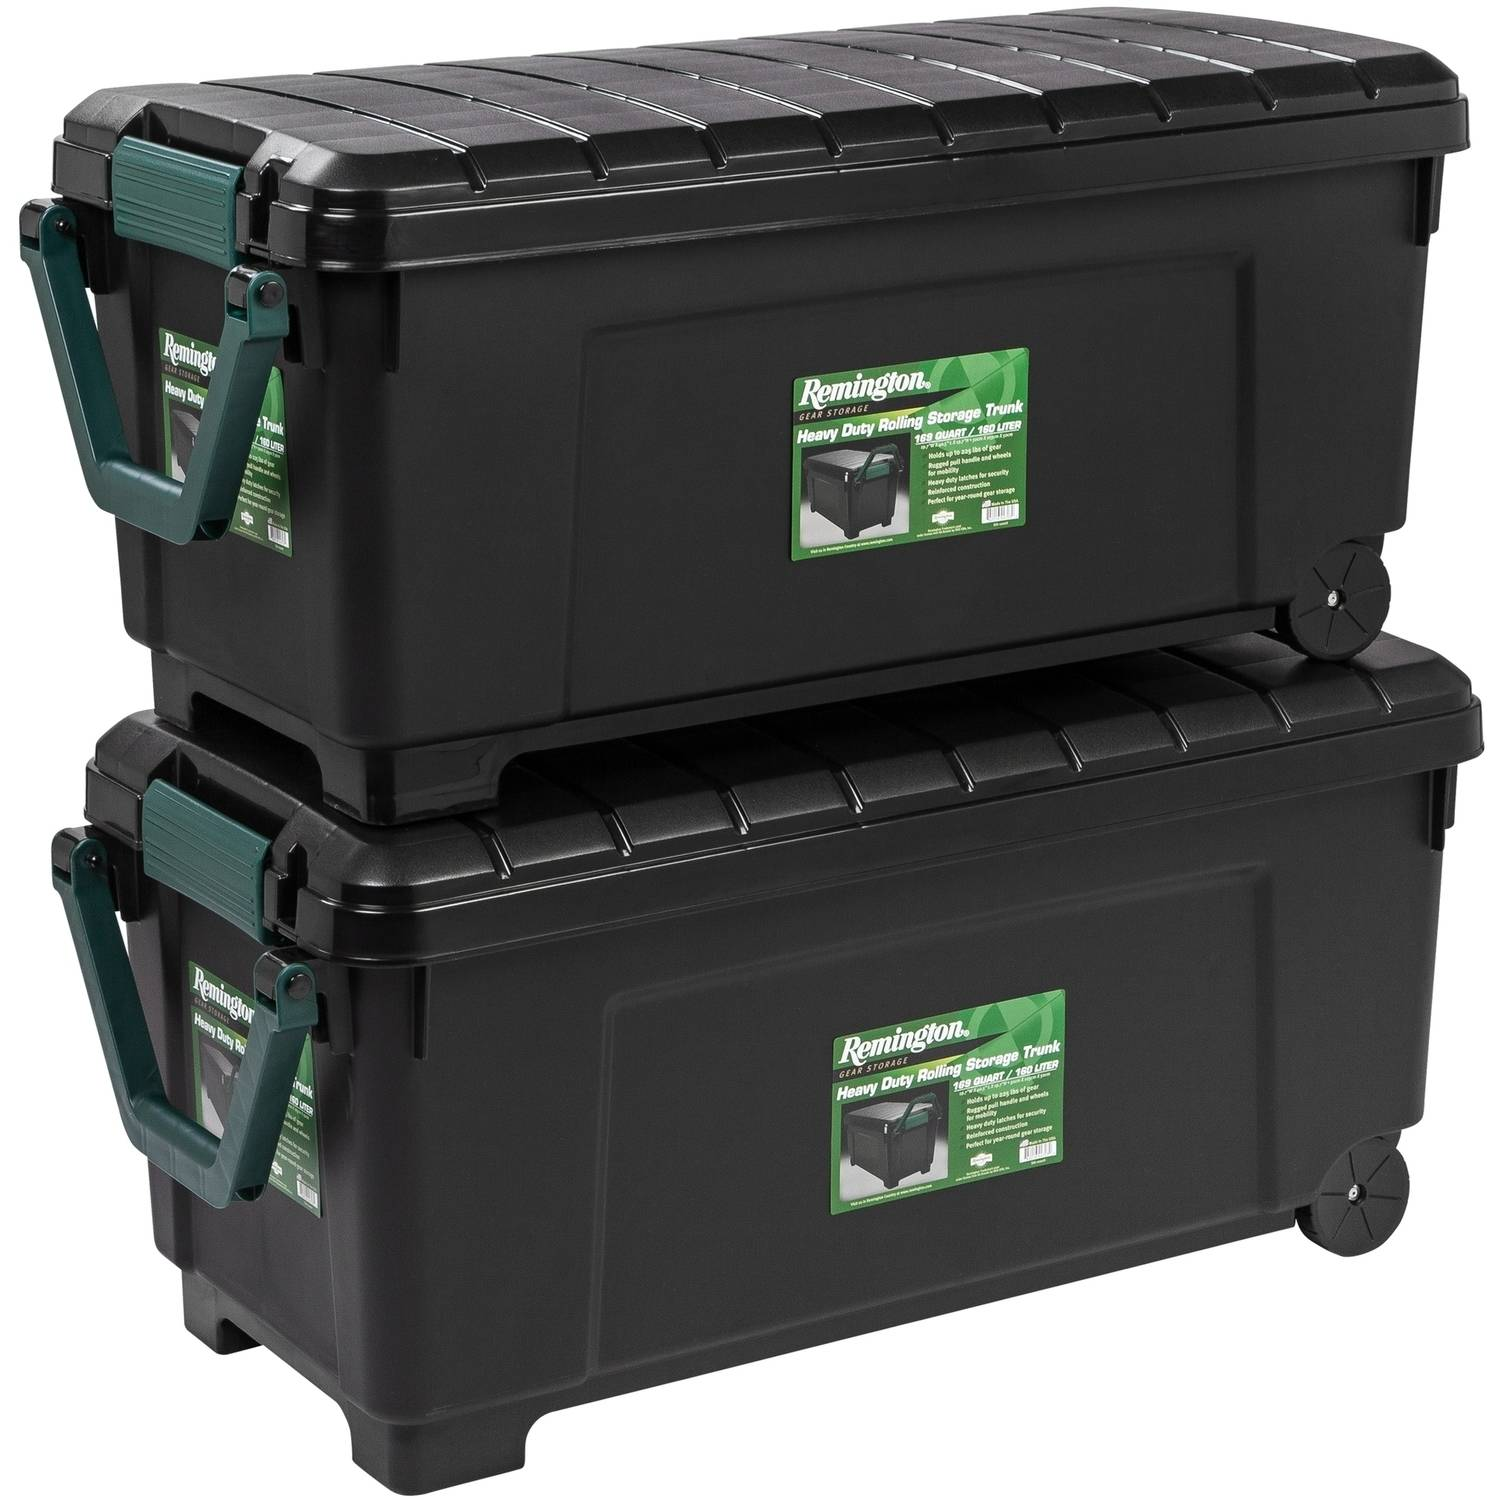 Remington 169 Qt. Plastic Storage Tote with Handle and Wheels, Green